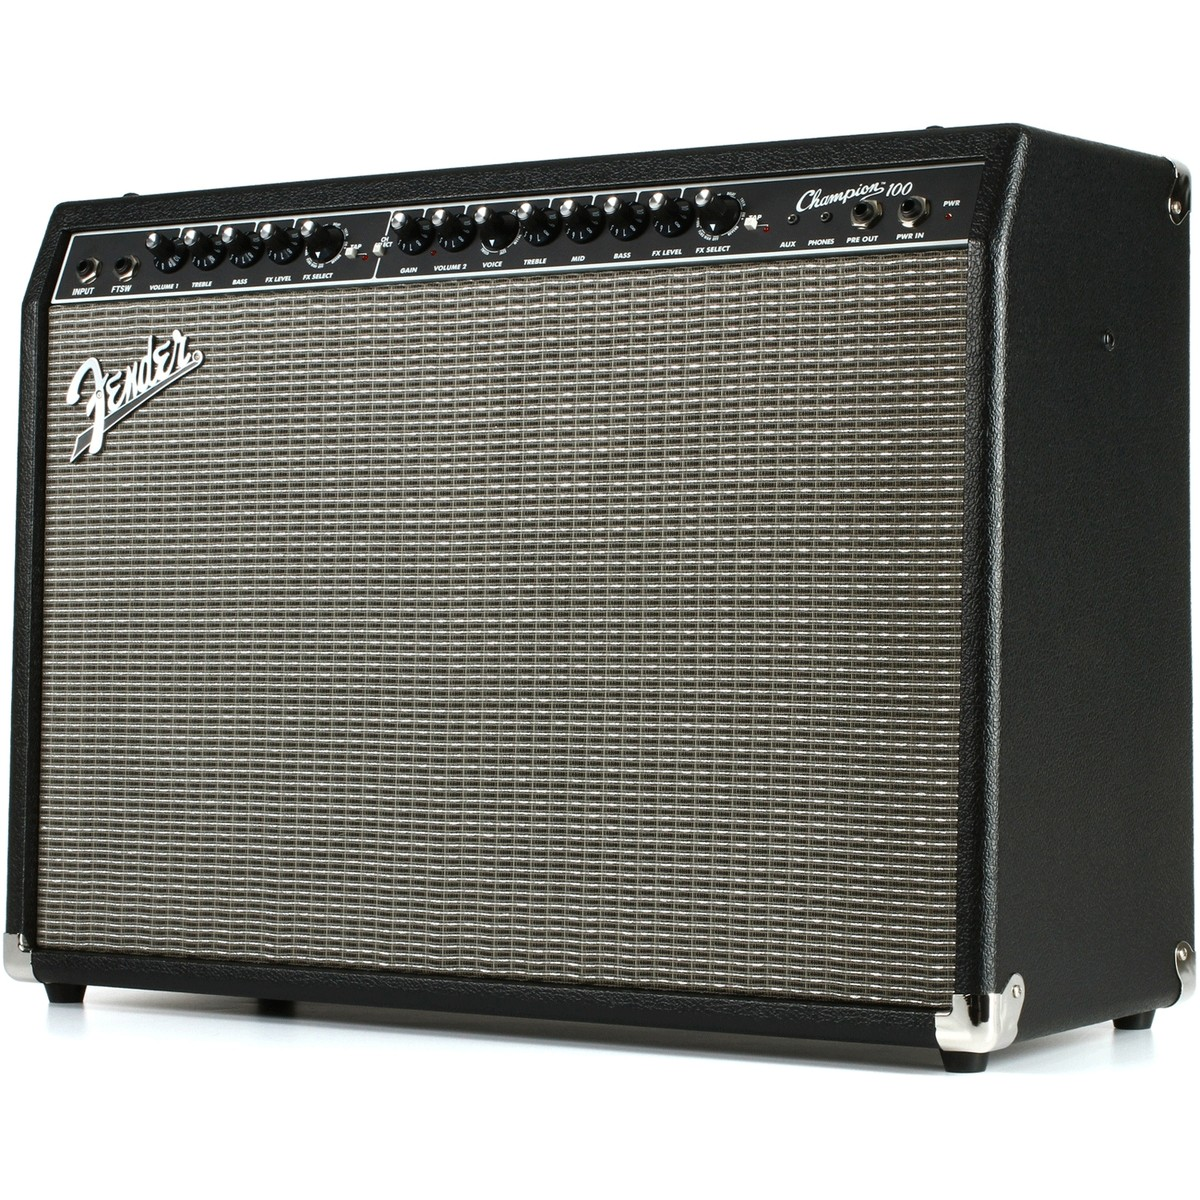 fender champion 100 guitar combo amp with effects box opened at. Black Bedroom Furniture Sets. Home Design Ideas